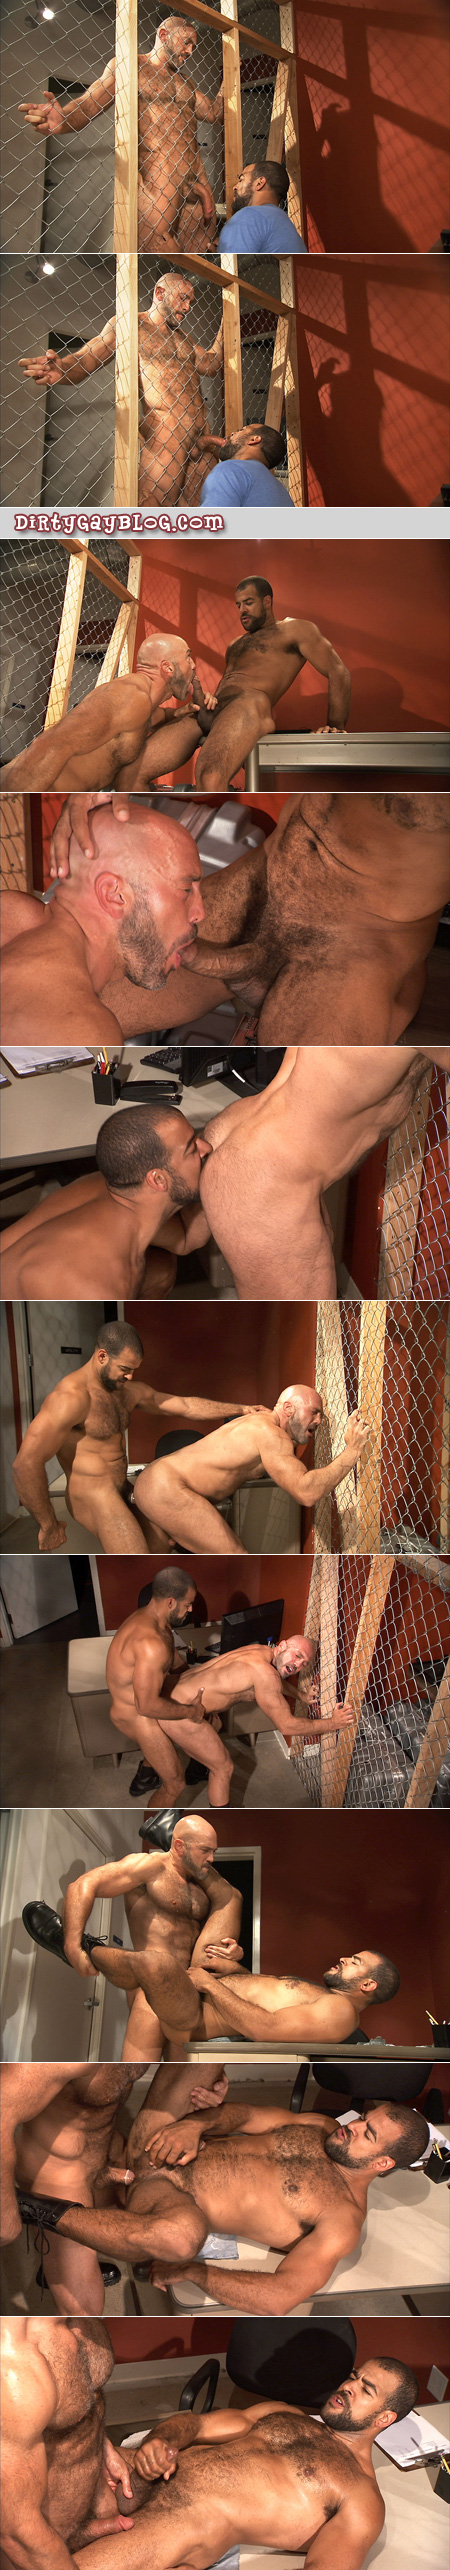 Two hairy muscle Daddies flip-fuck at a blue collar men job site.